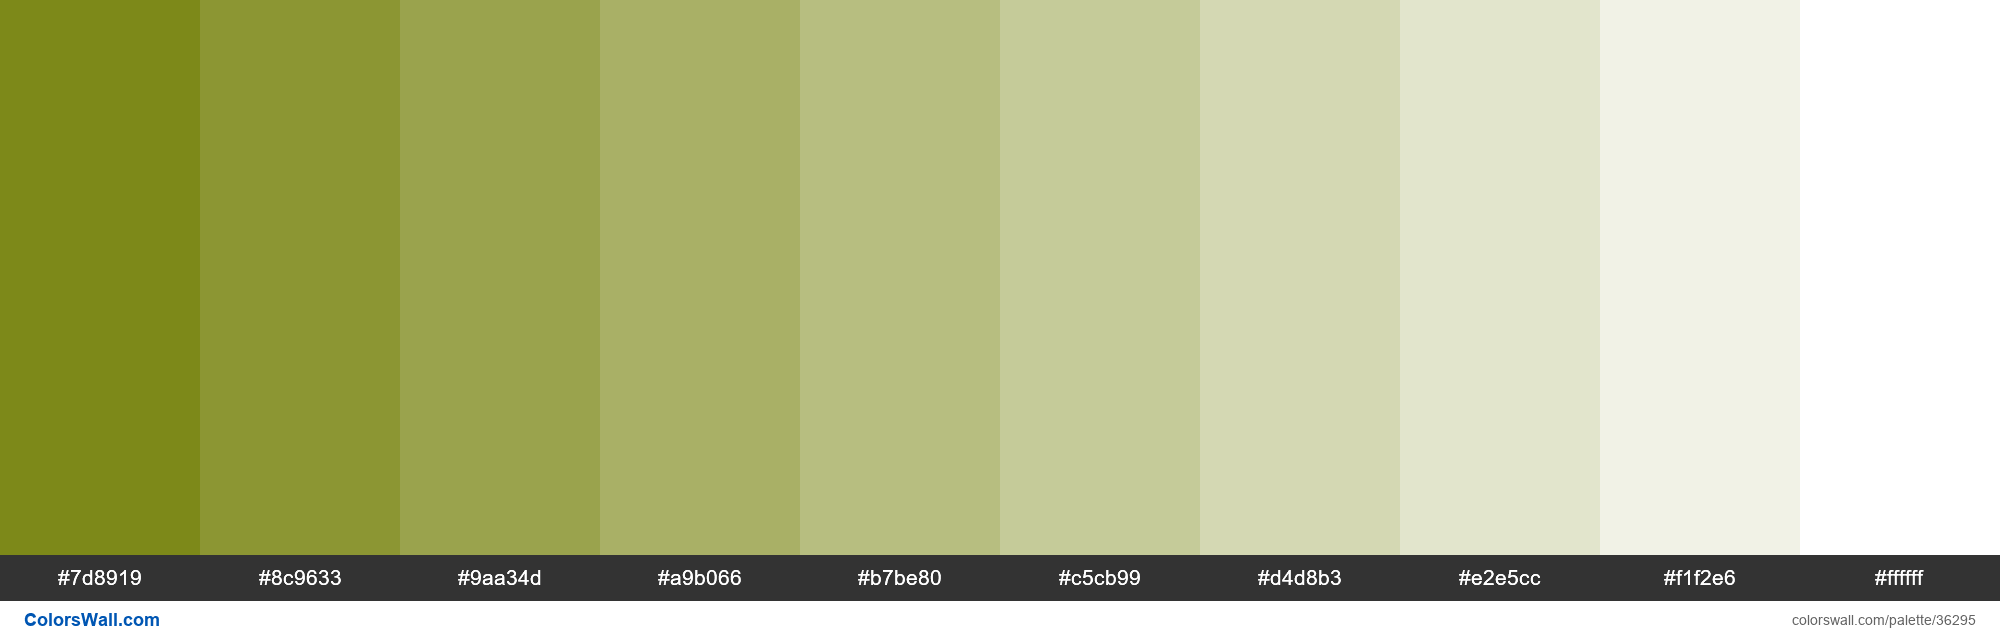 Tints XKCD Color poop green #6f7c00 hex - #36295